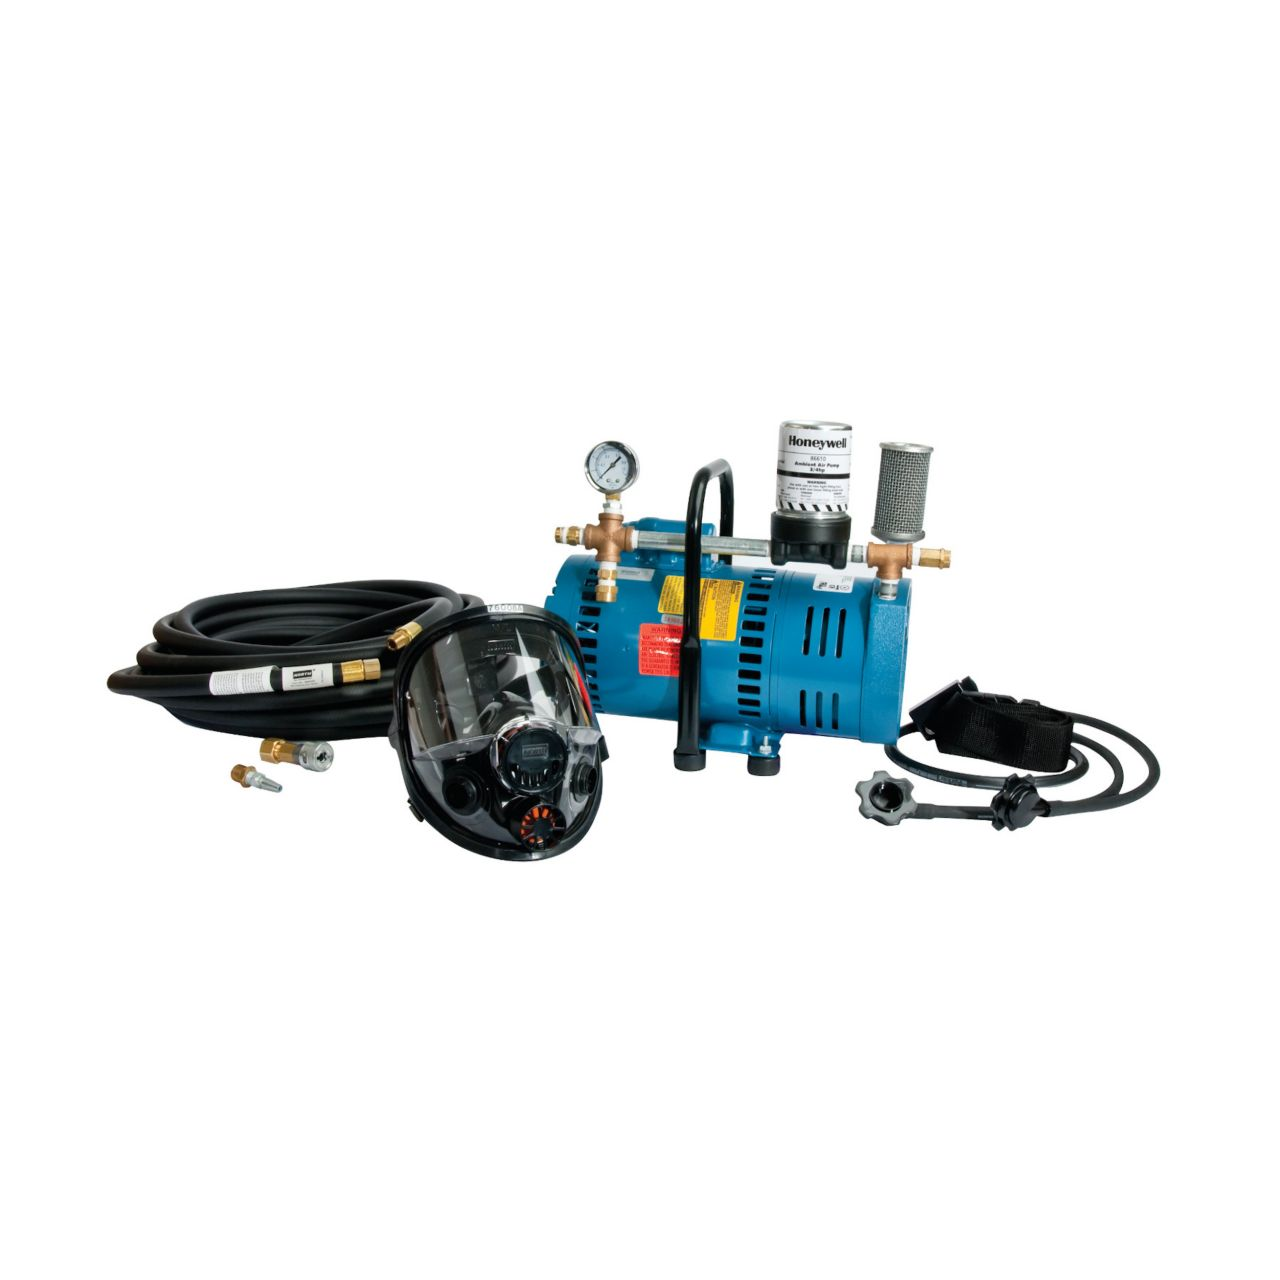 HS_ambient_air_pumps_north_appa_unconnected_resp_kit